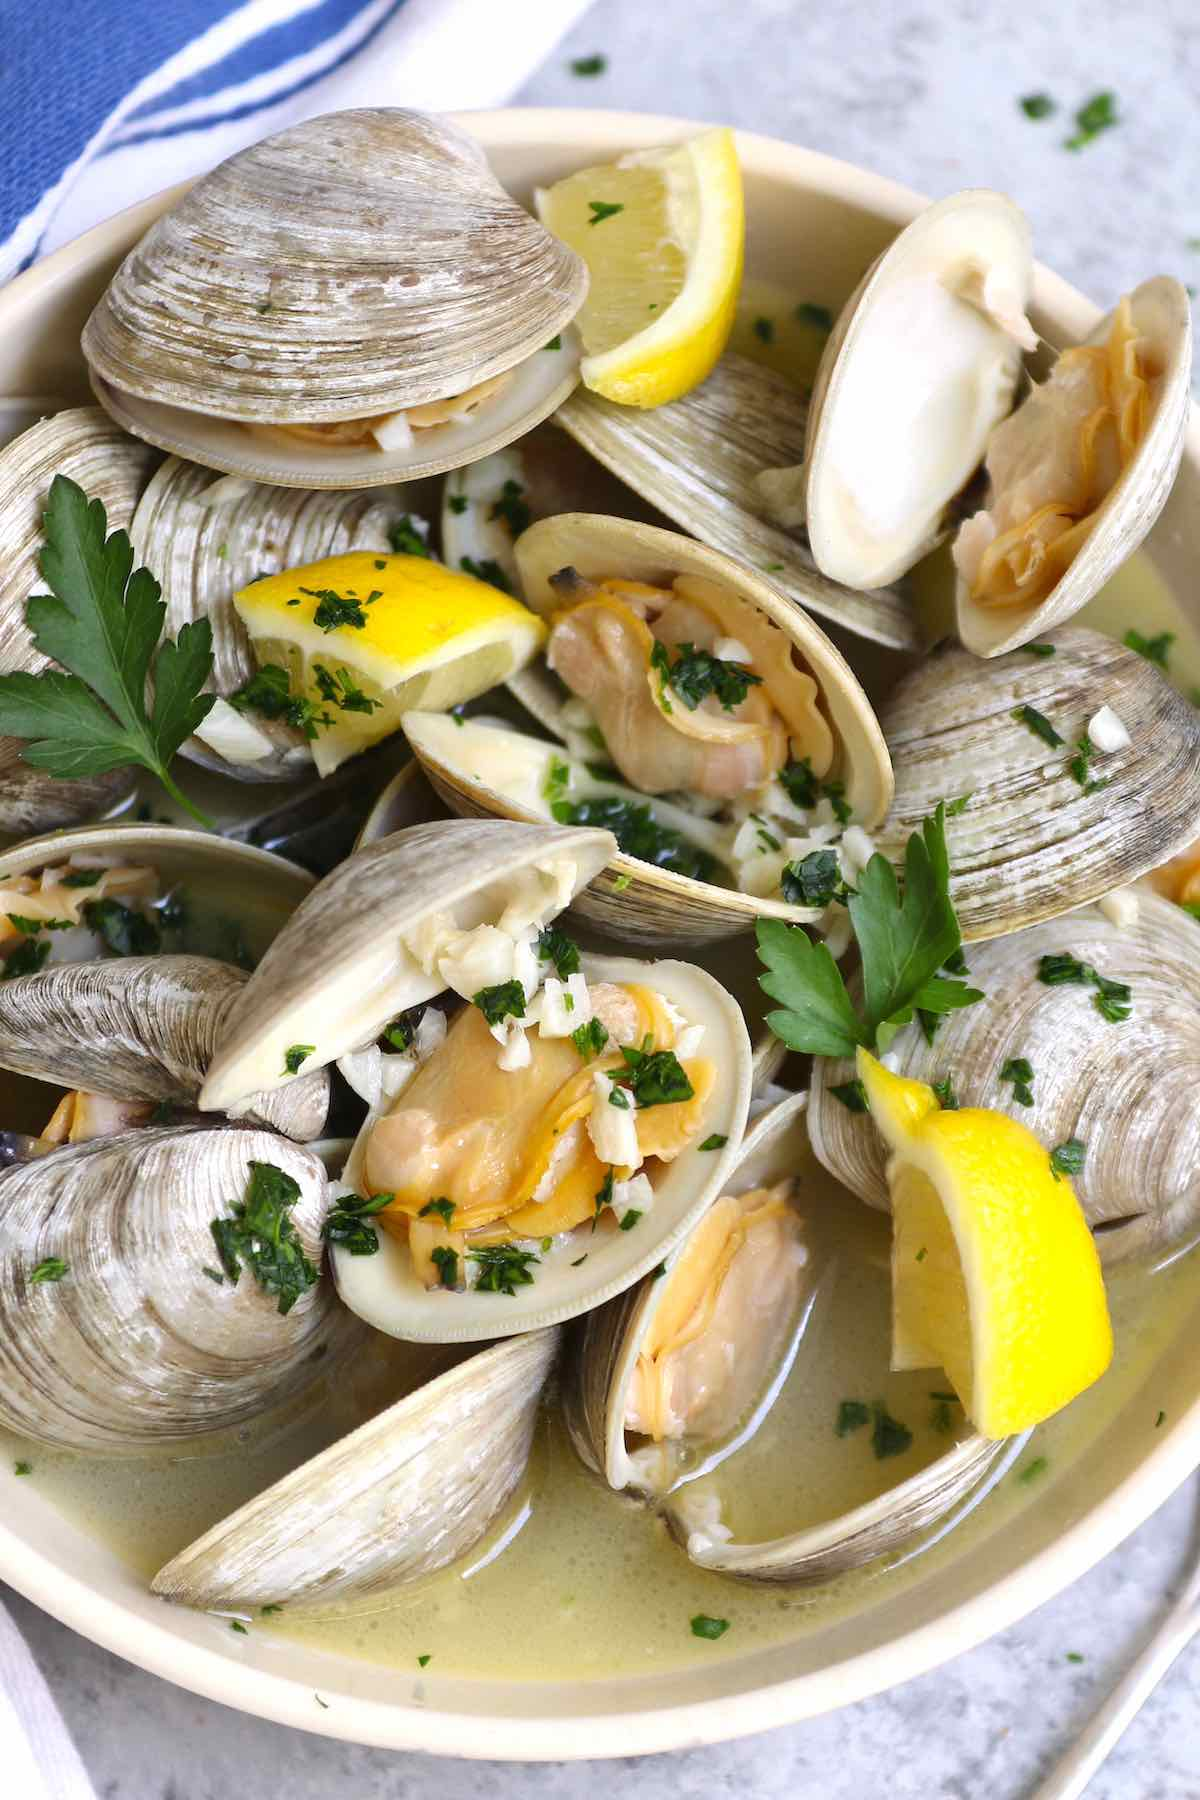 A serving of little neck clams with lemon wedges and fresh herbs